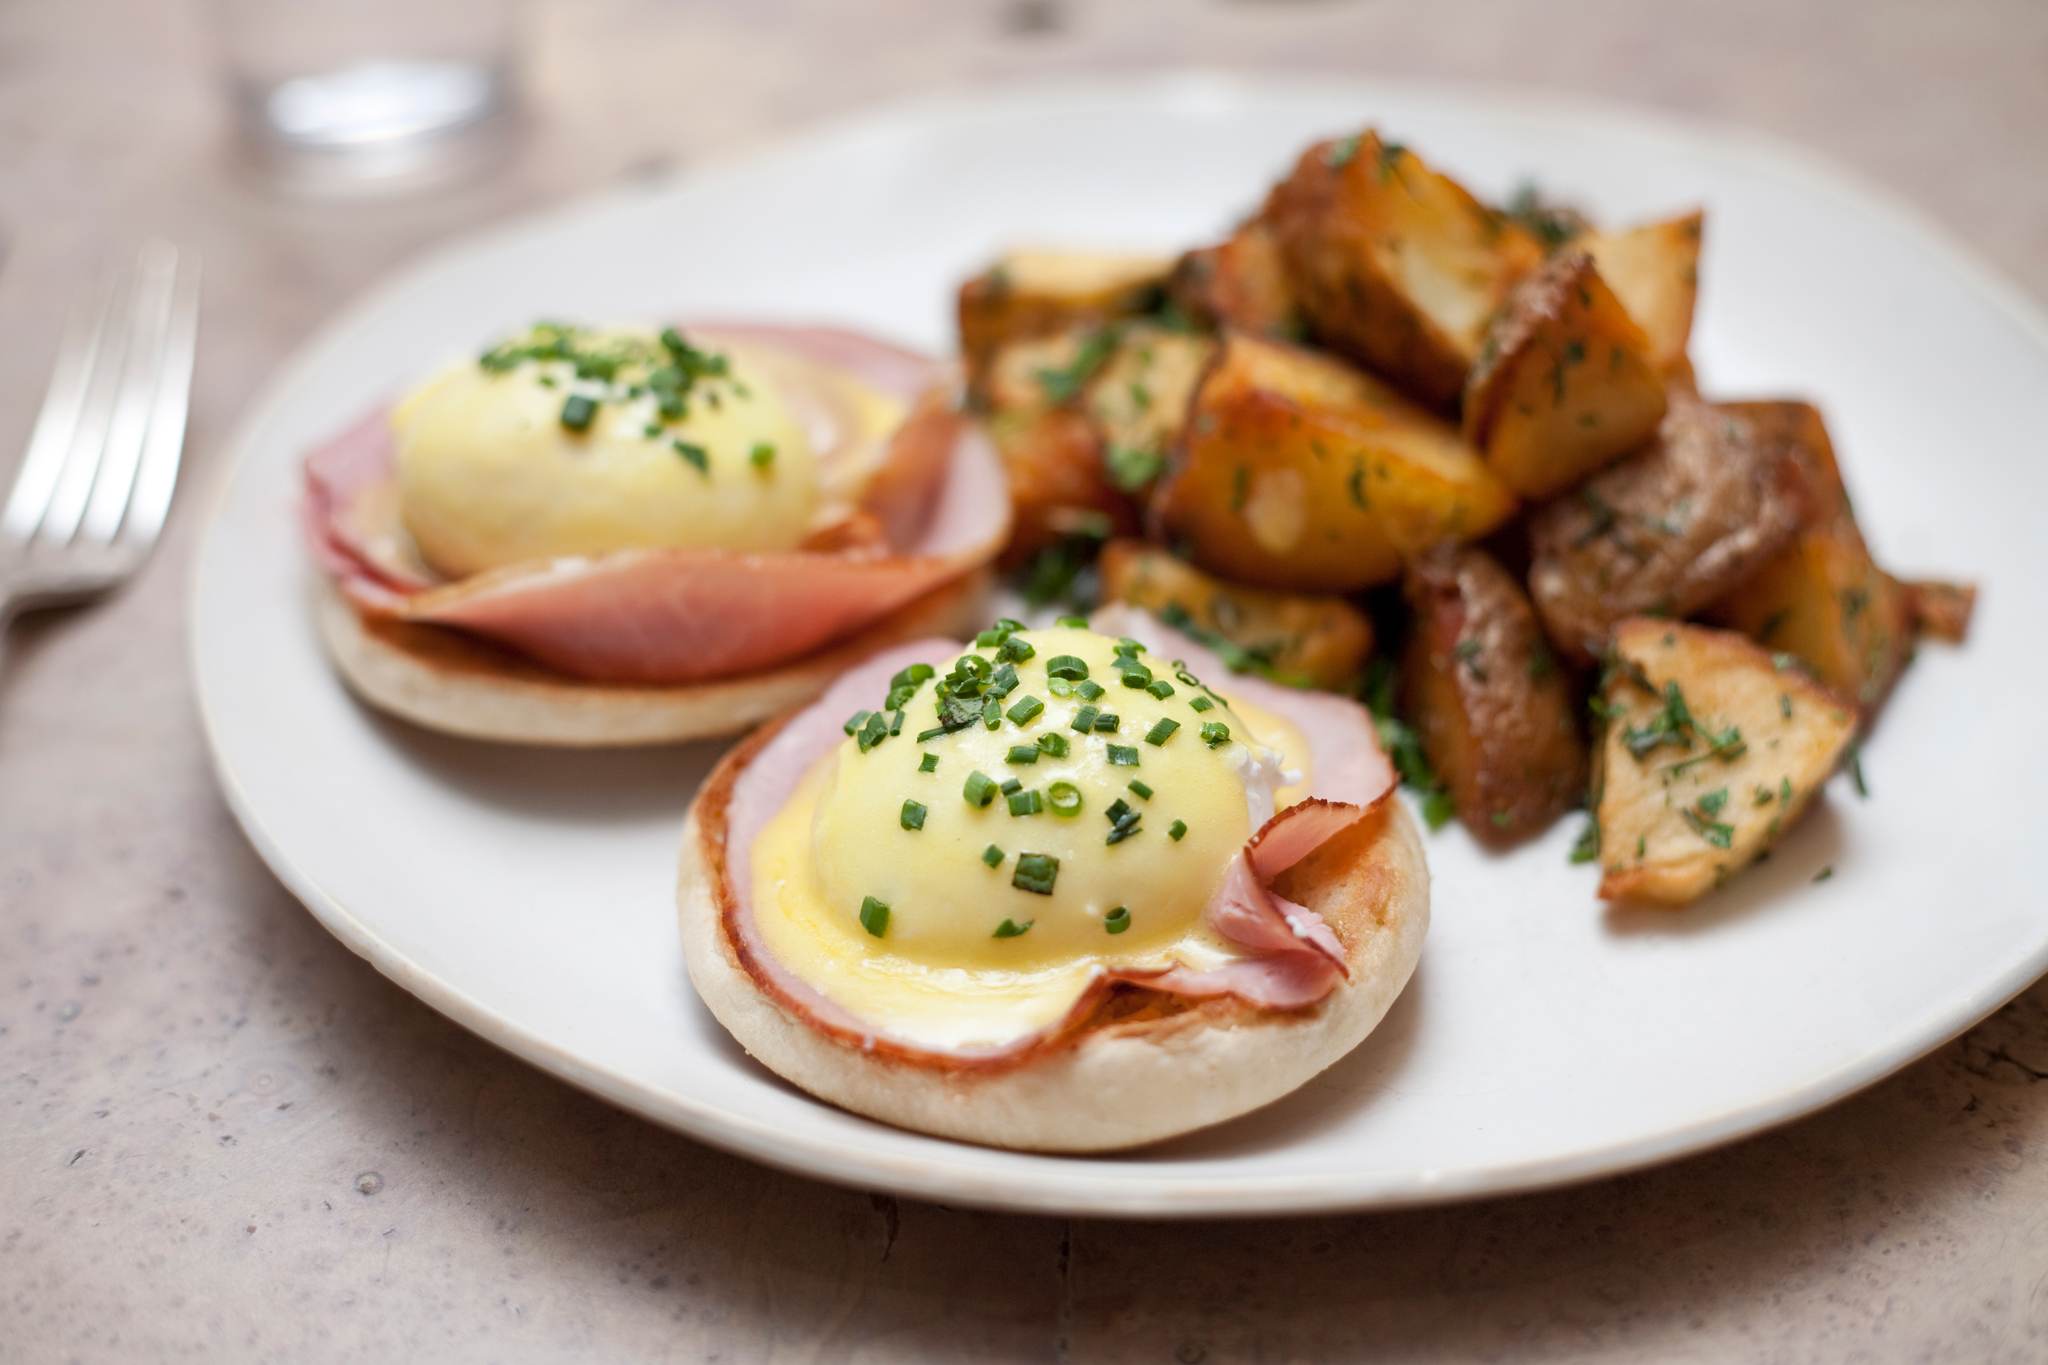 best brunch restaurants in nyc that take reservations